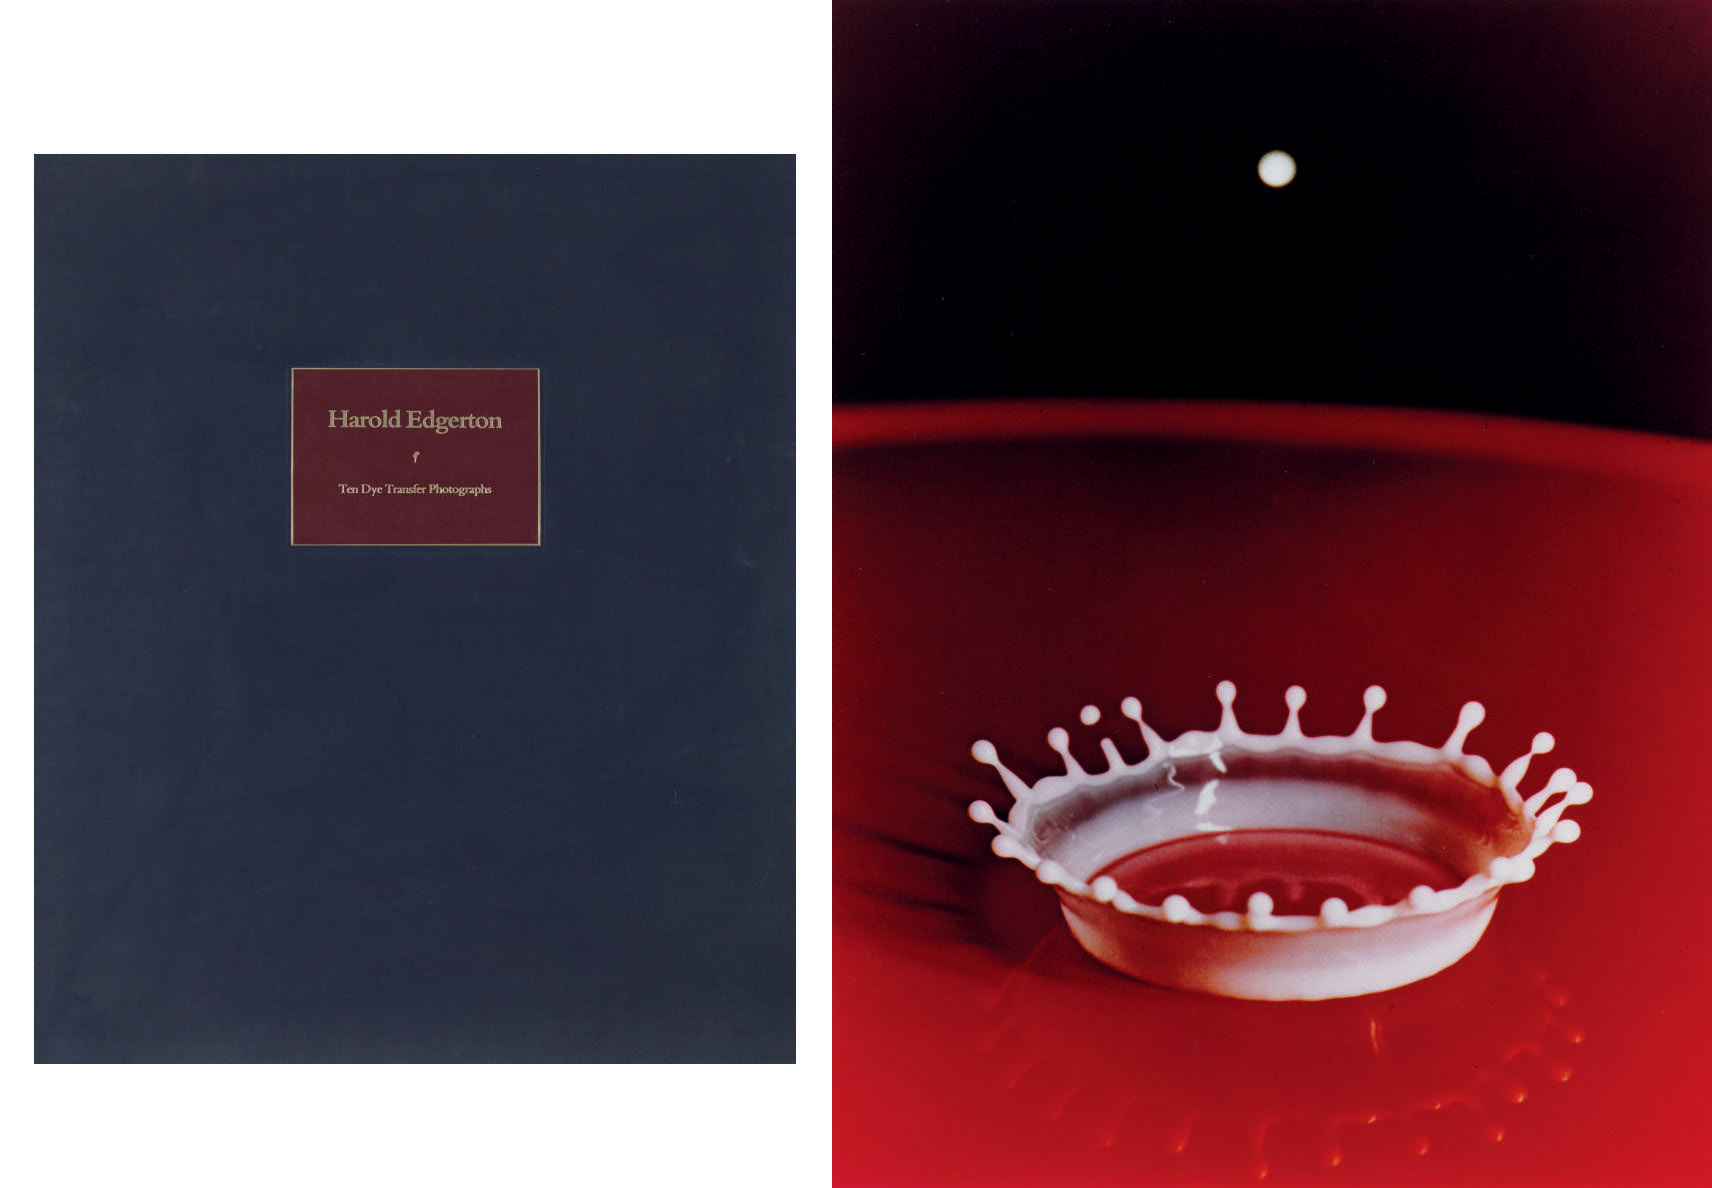 Harold Edgerton: Ten Dye-Transfer Photographs